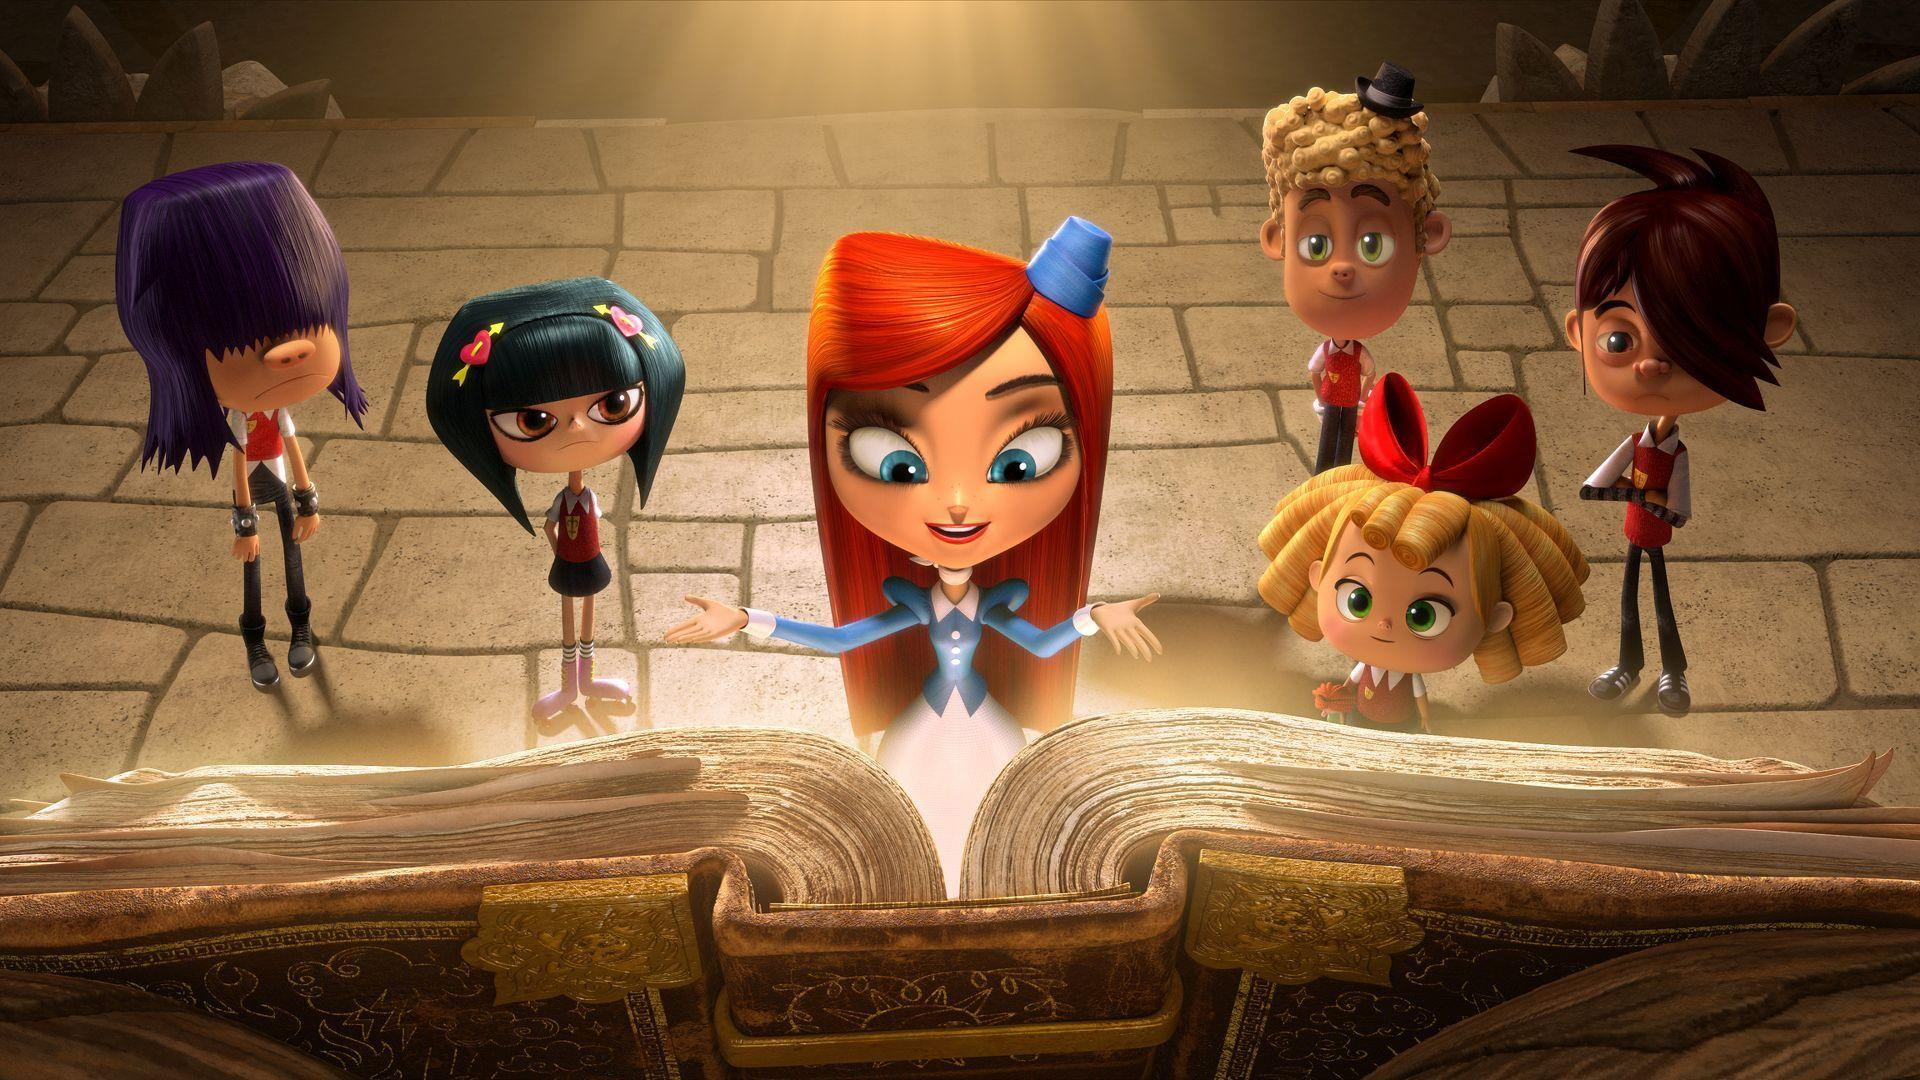 Cute Morning Coffee Wallpaper Hd Looking At The Big Book The Book Of Life Wallpaper